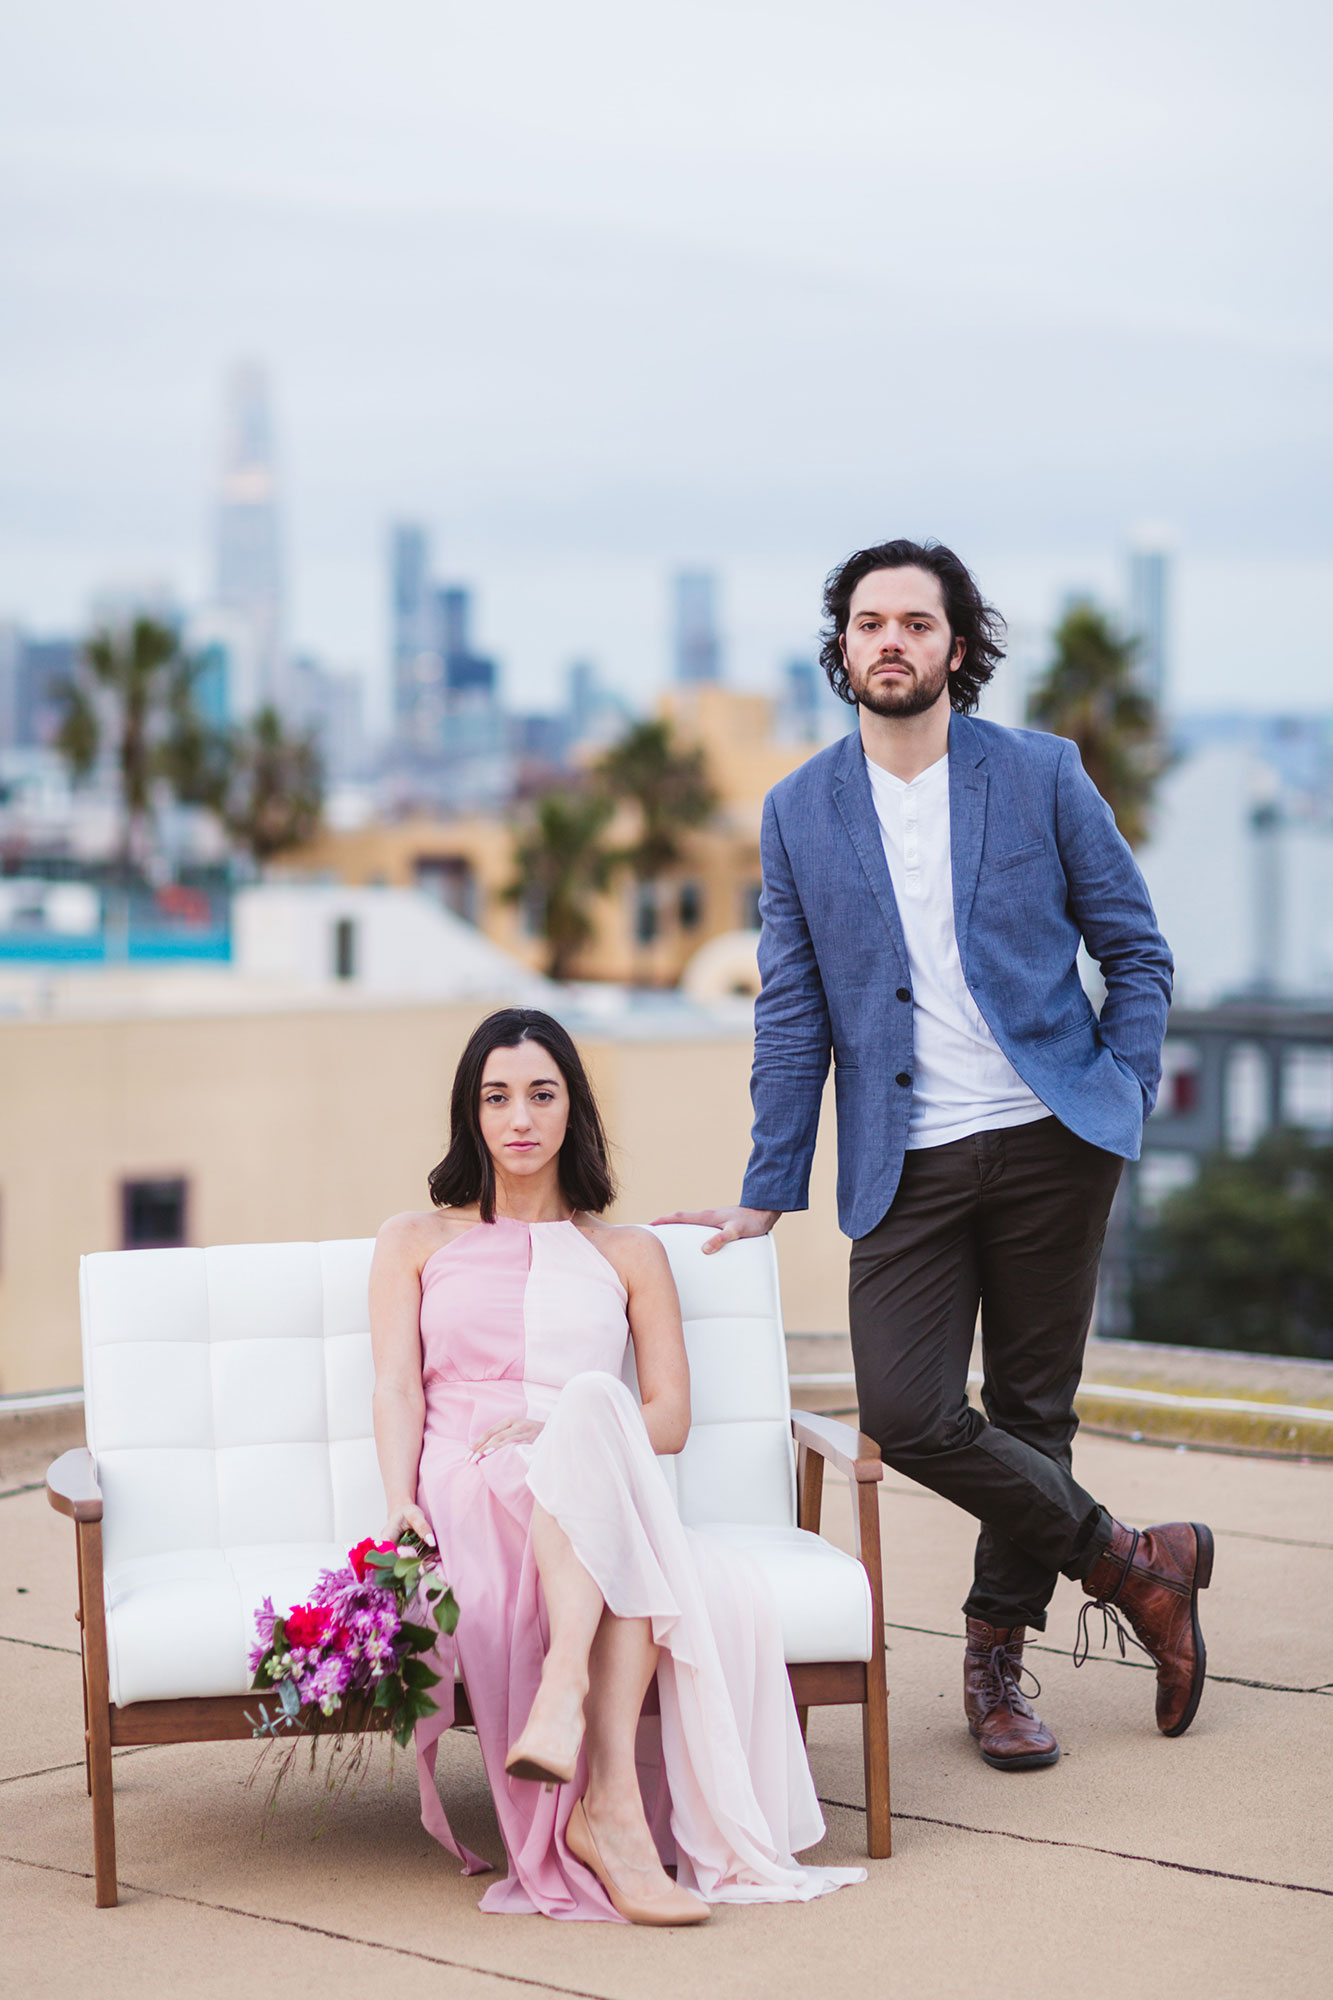 moody rooftop engagement shoot on couch